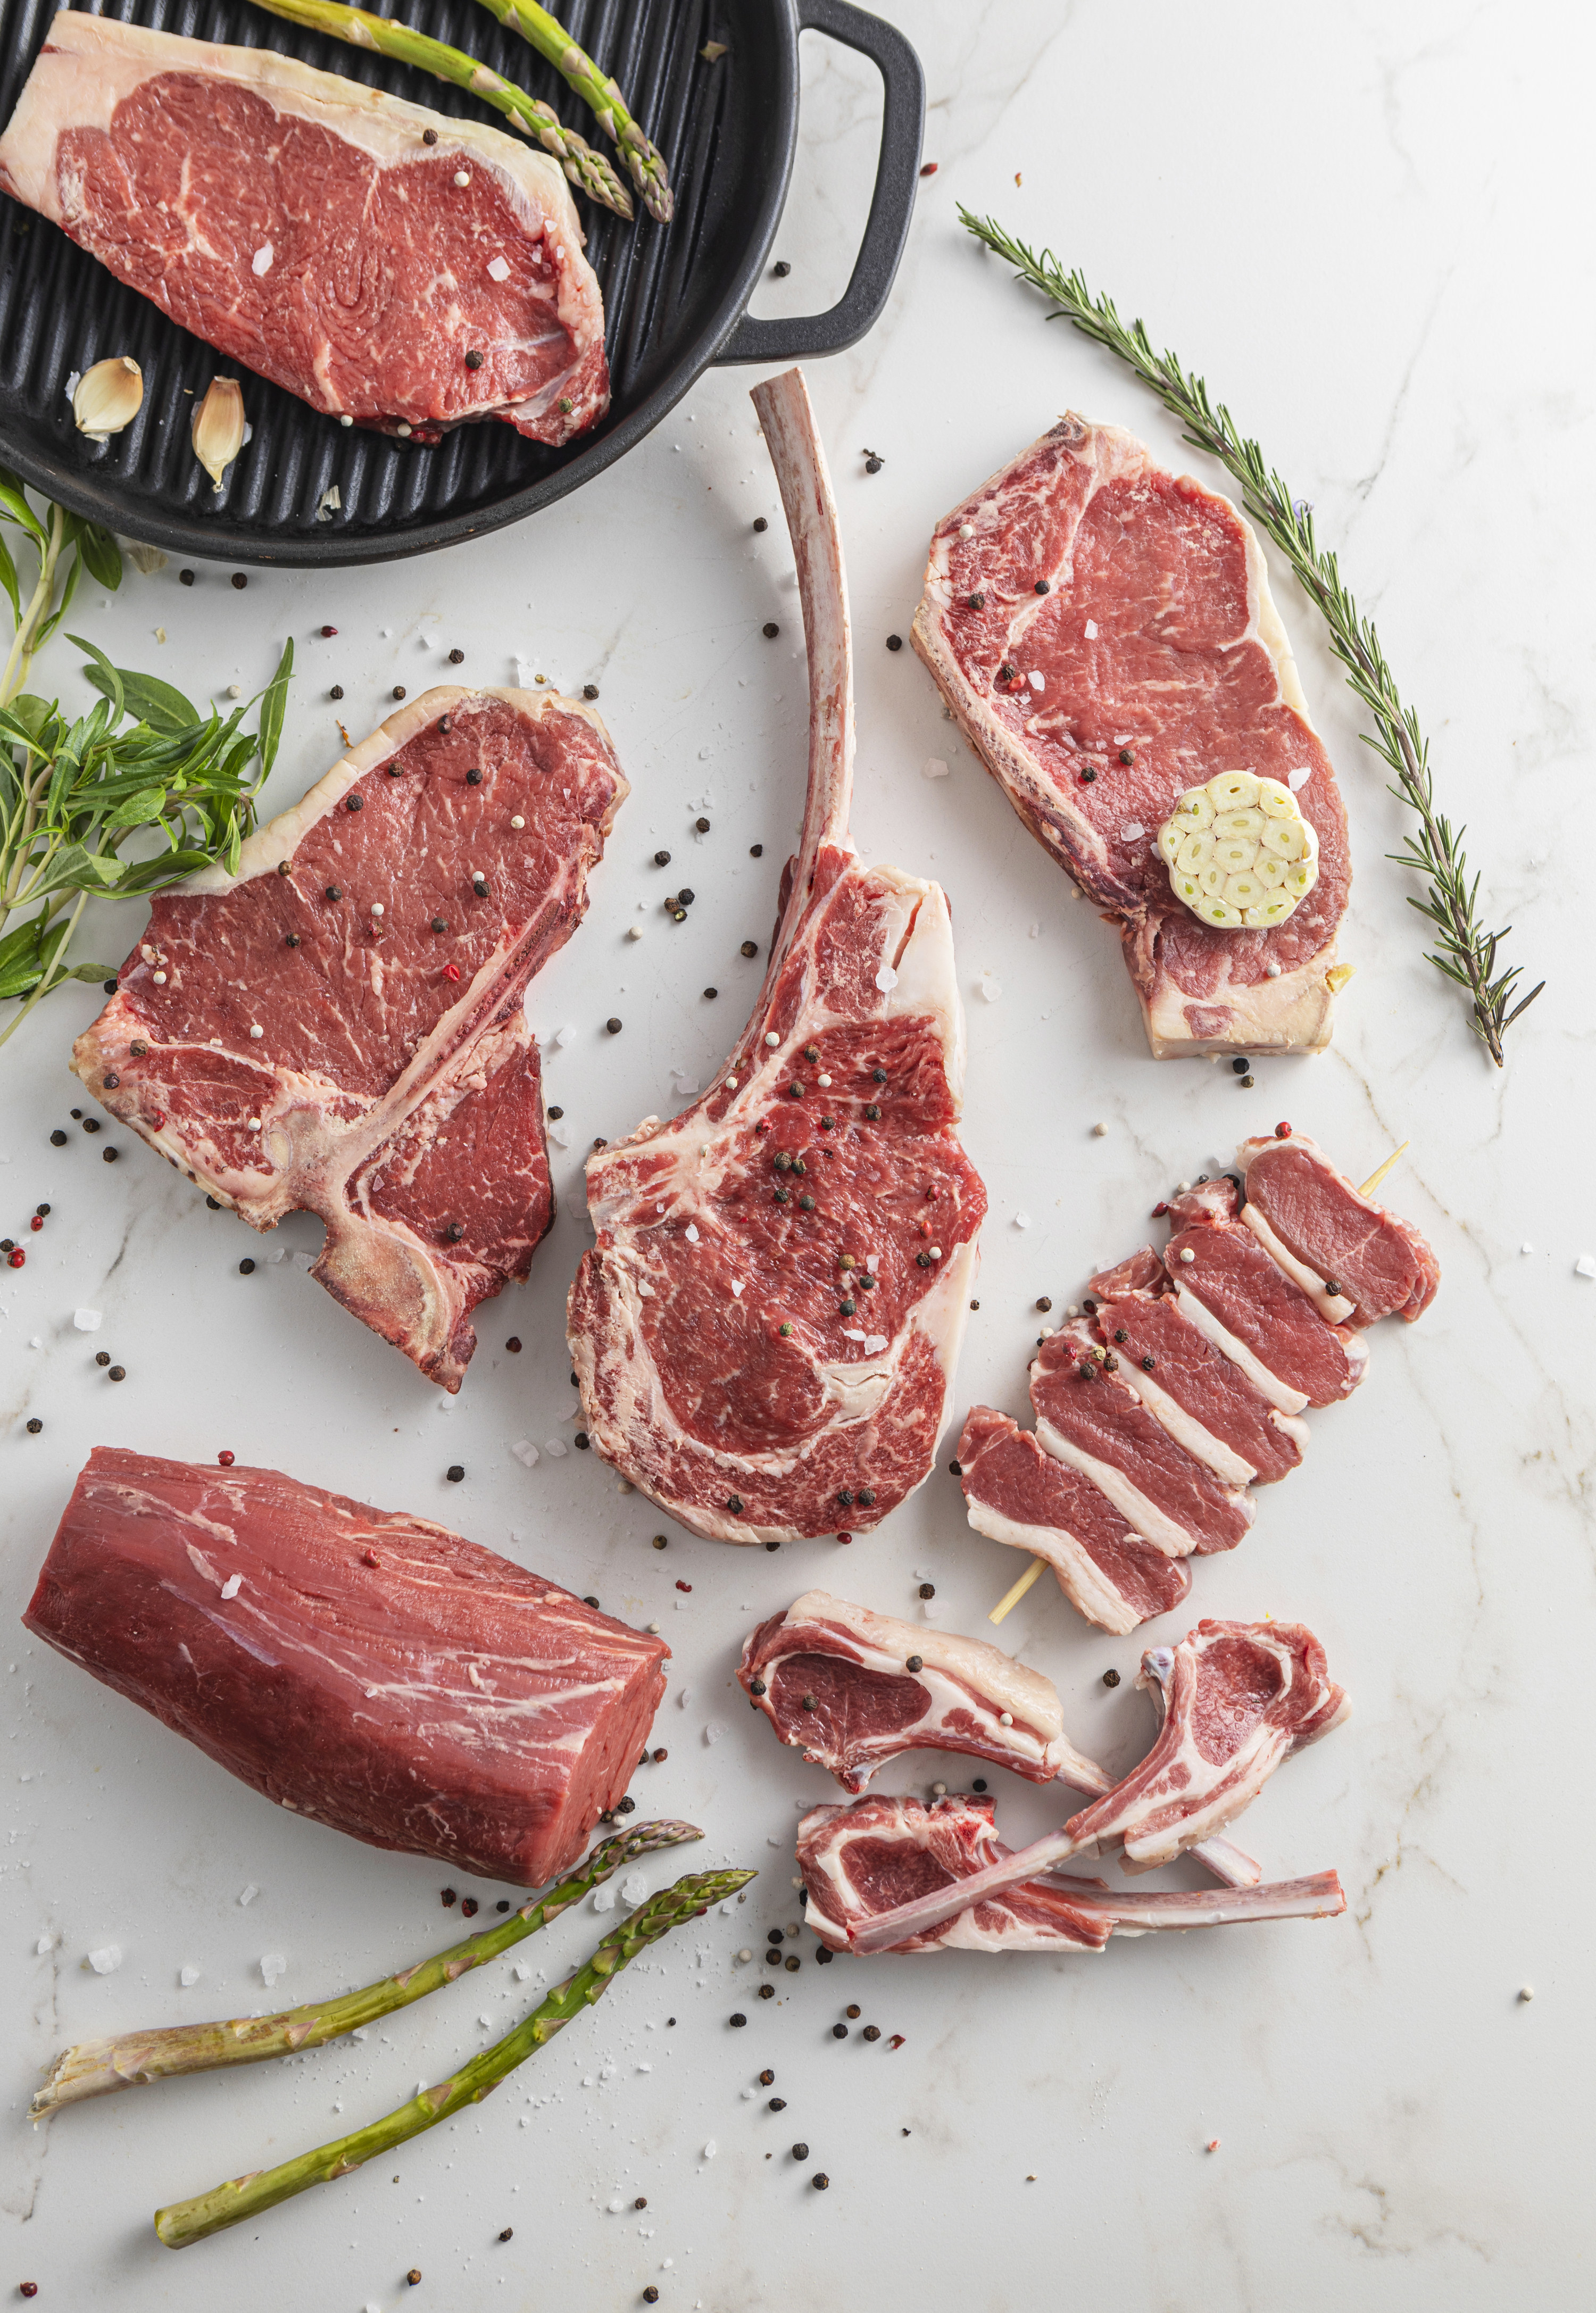 raw beef meat steaks for grilling with seasoning and utensils on marble background